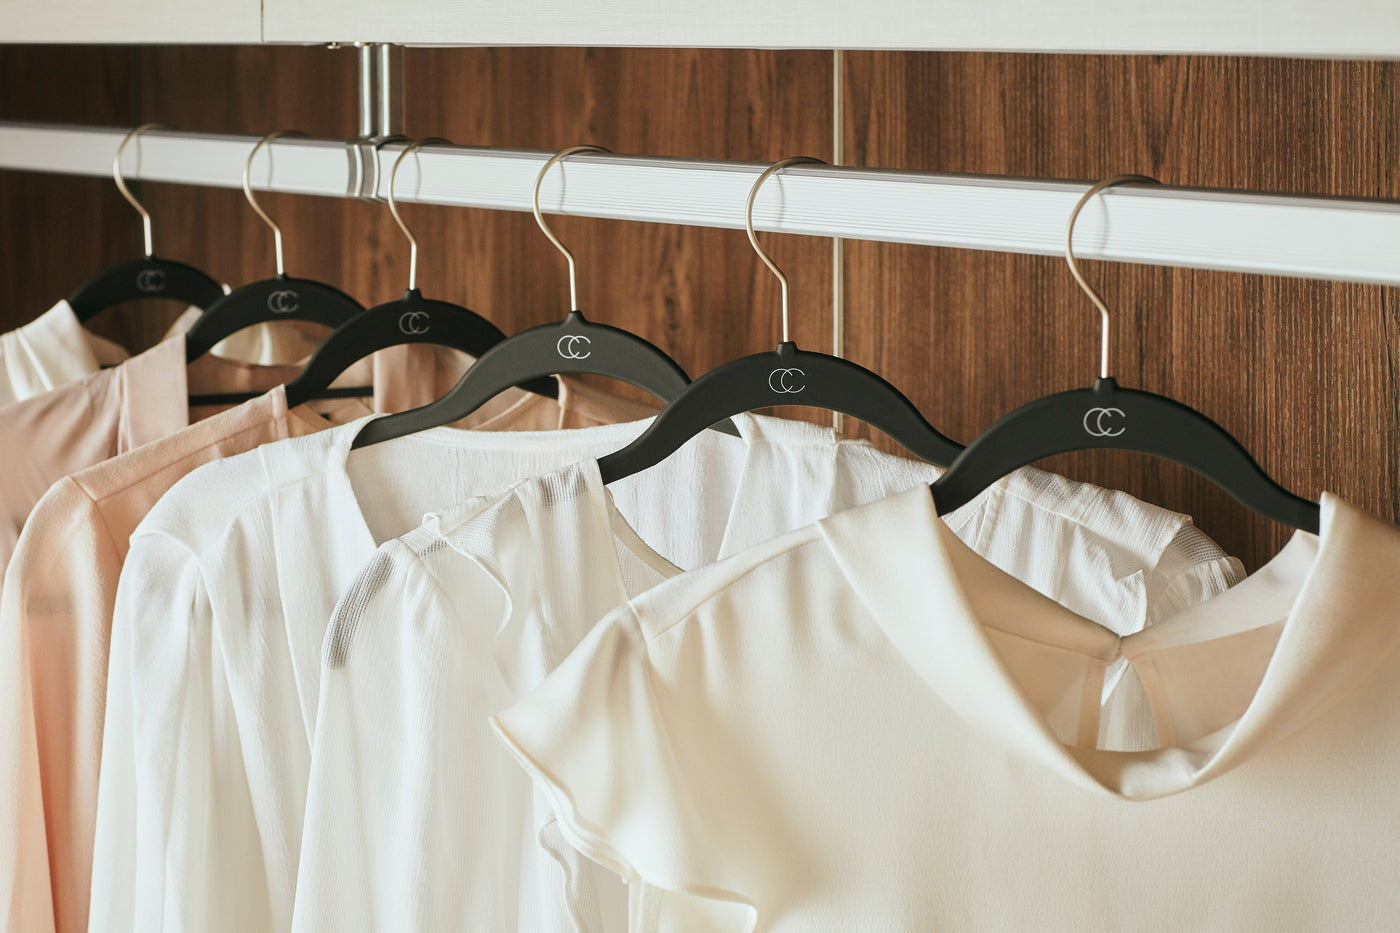 Shirt Hangers Collection by California Closets Essentials